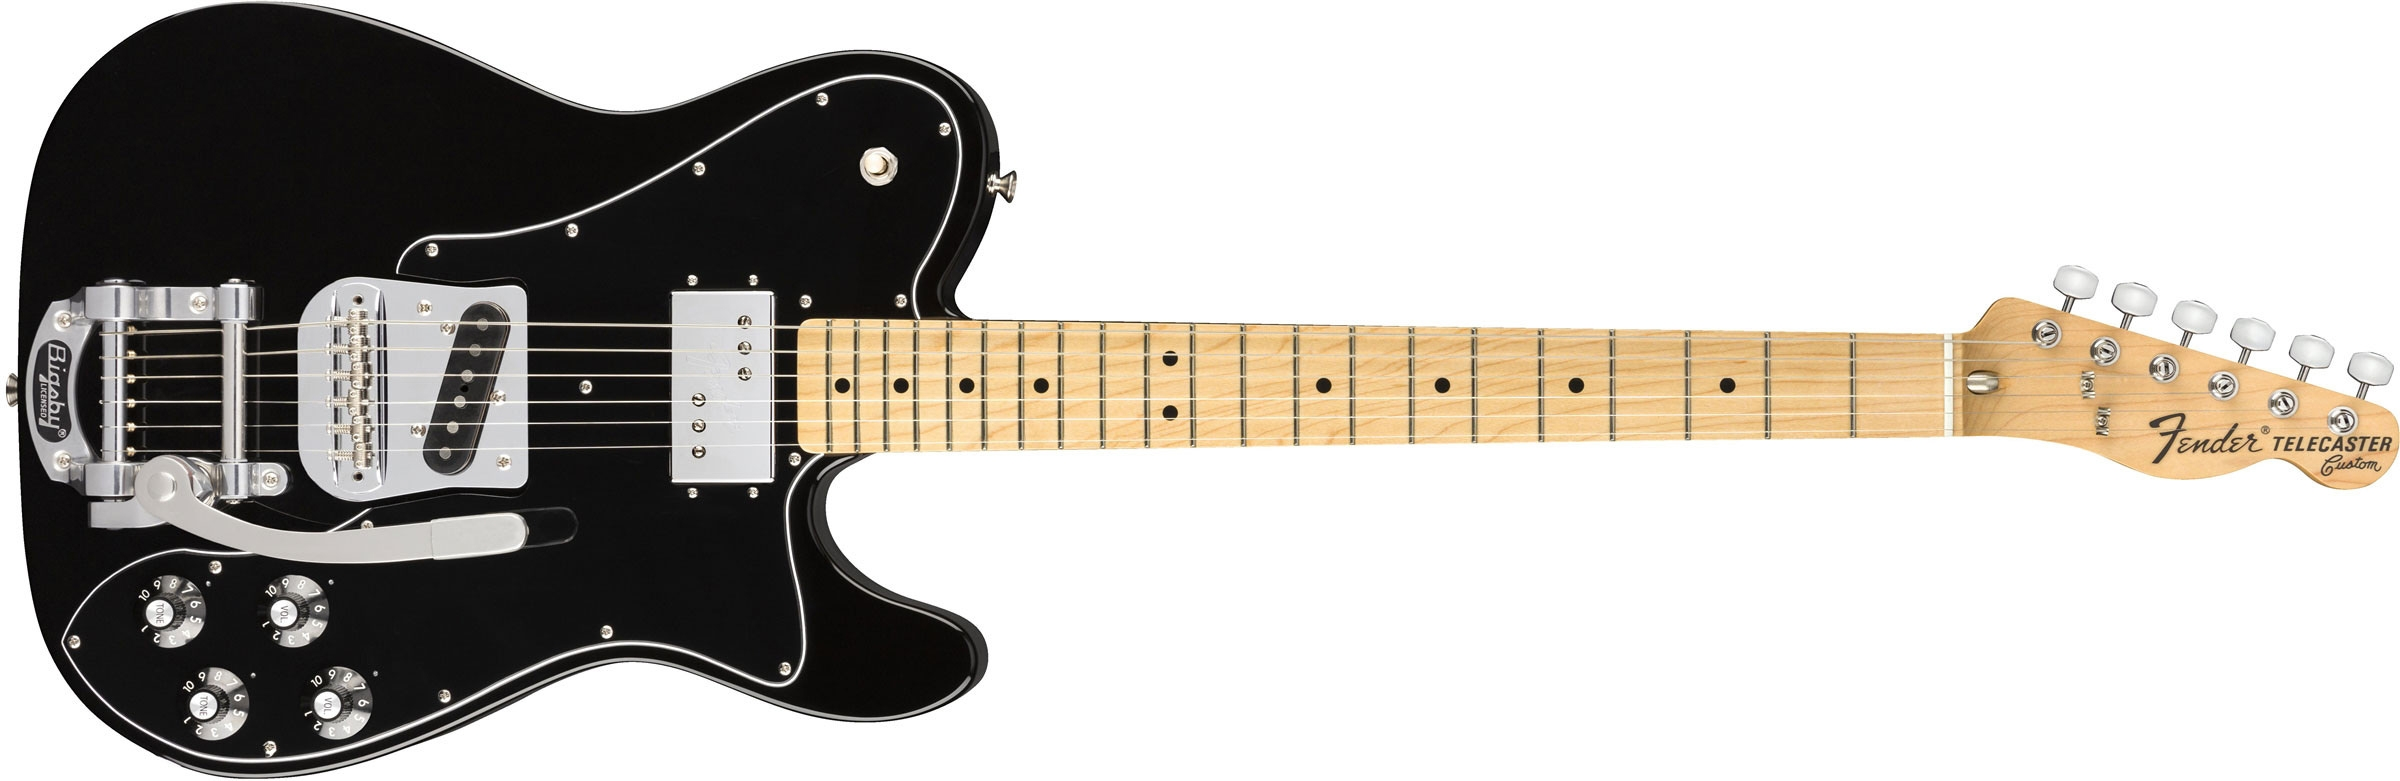 FENDER-Limited-Edition-72-Telecaster-Custom-w-Bigsby-MN-Black-0148610306-sku-23635